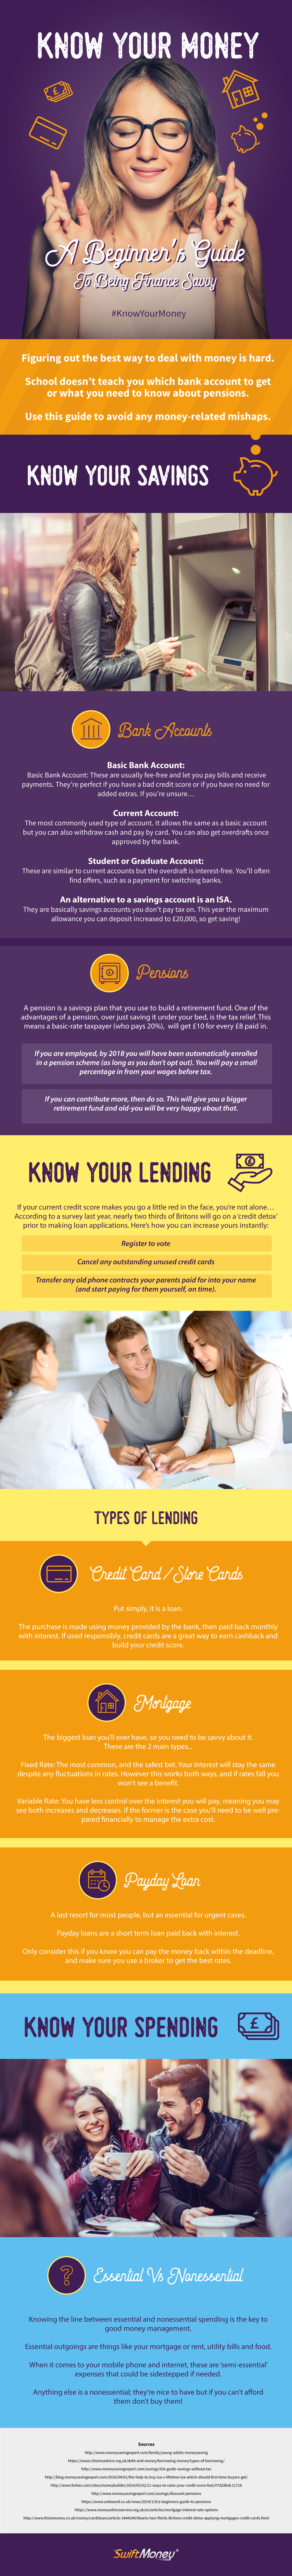 Know-your-money-infographic